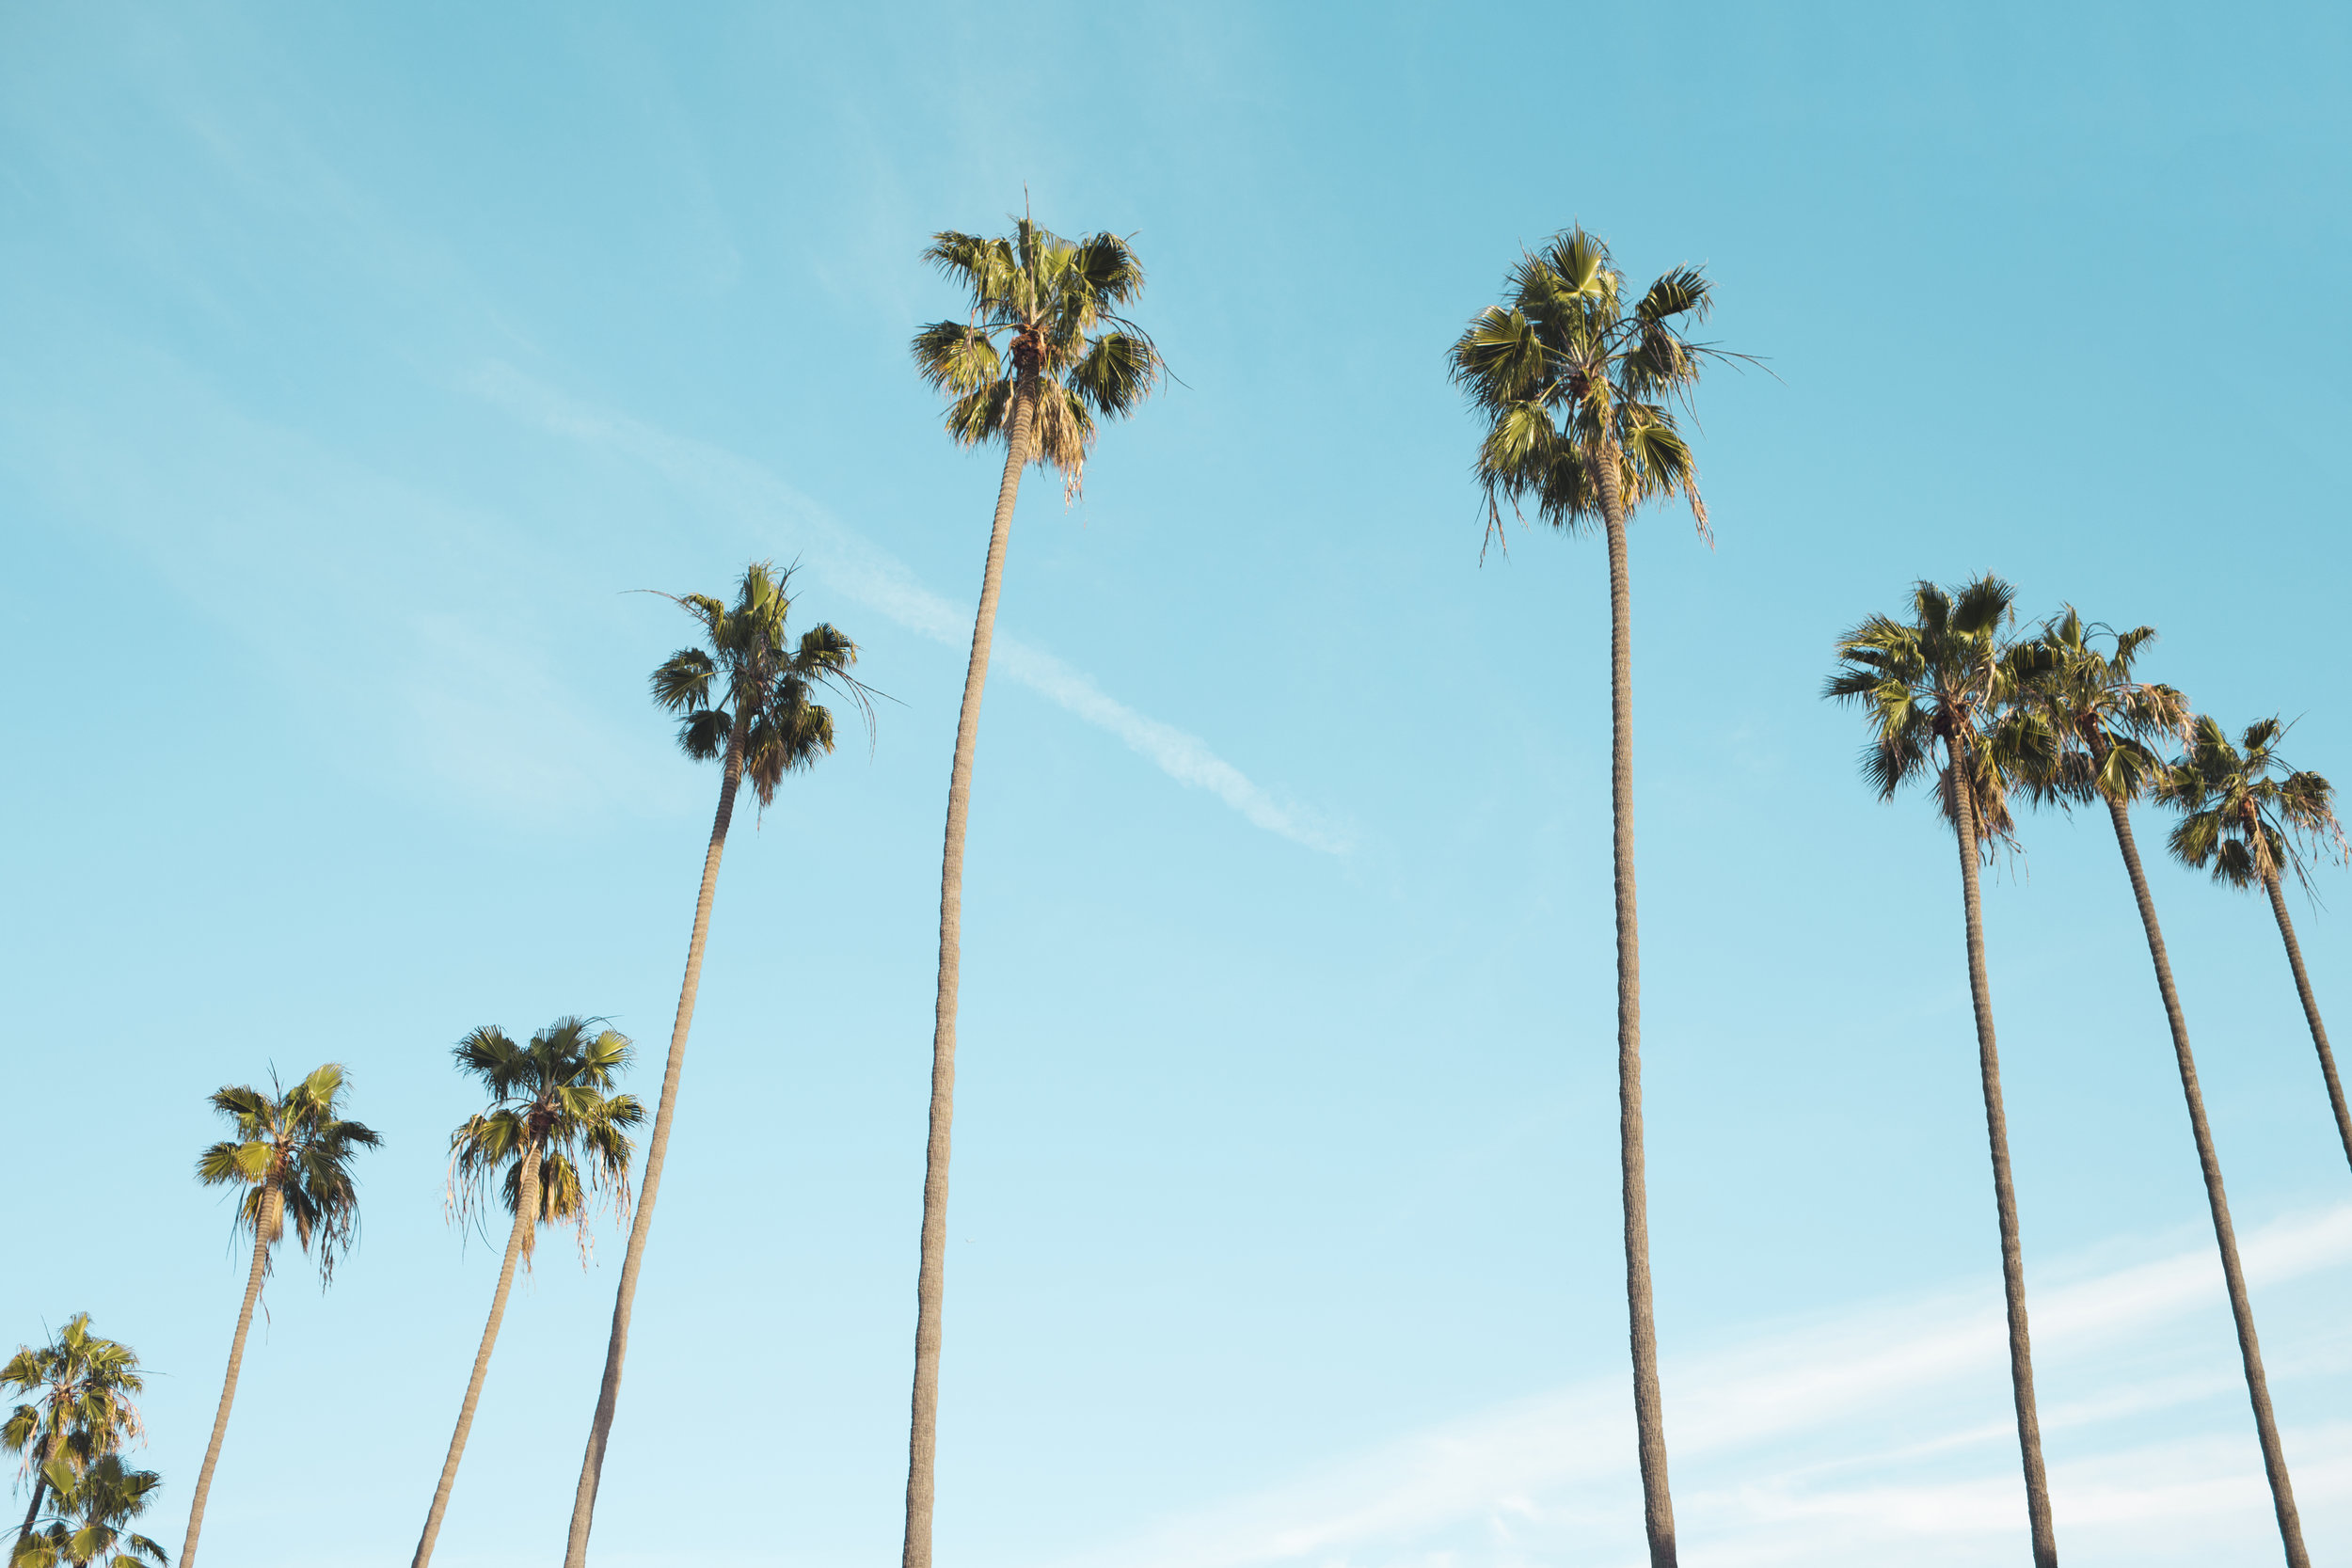 2 day L.A. trip itinerary